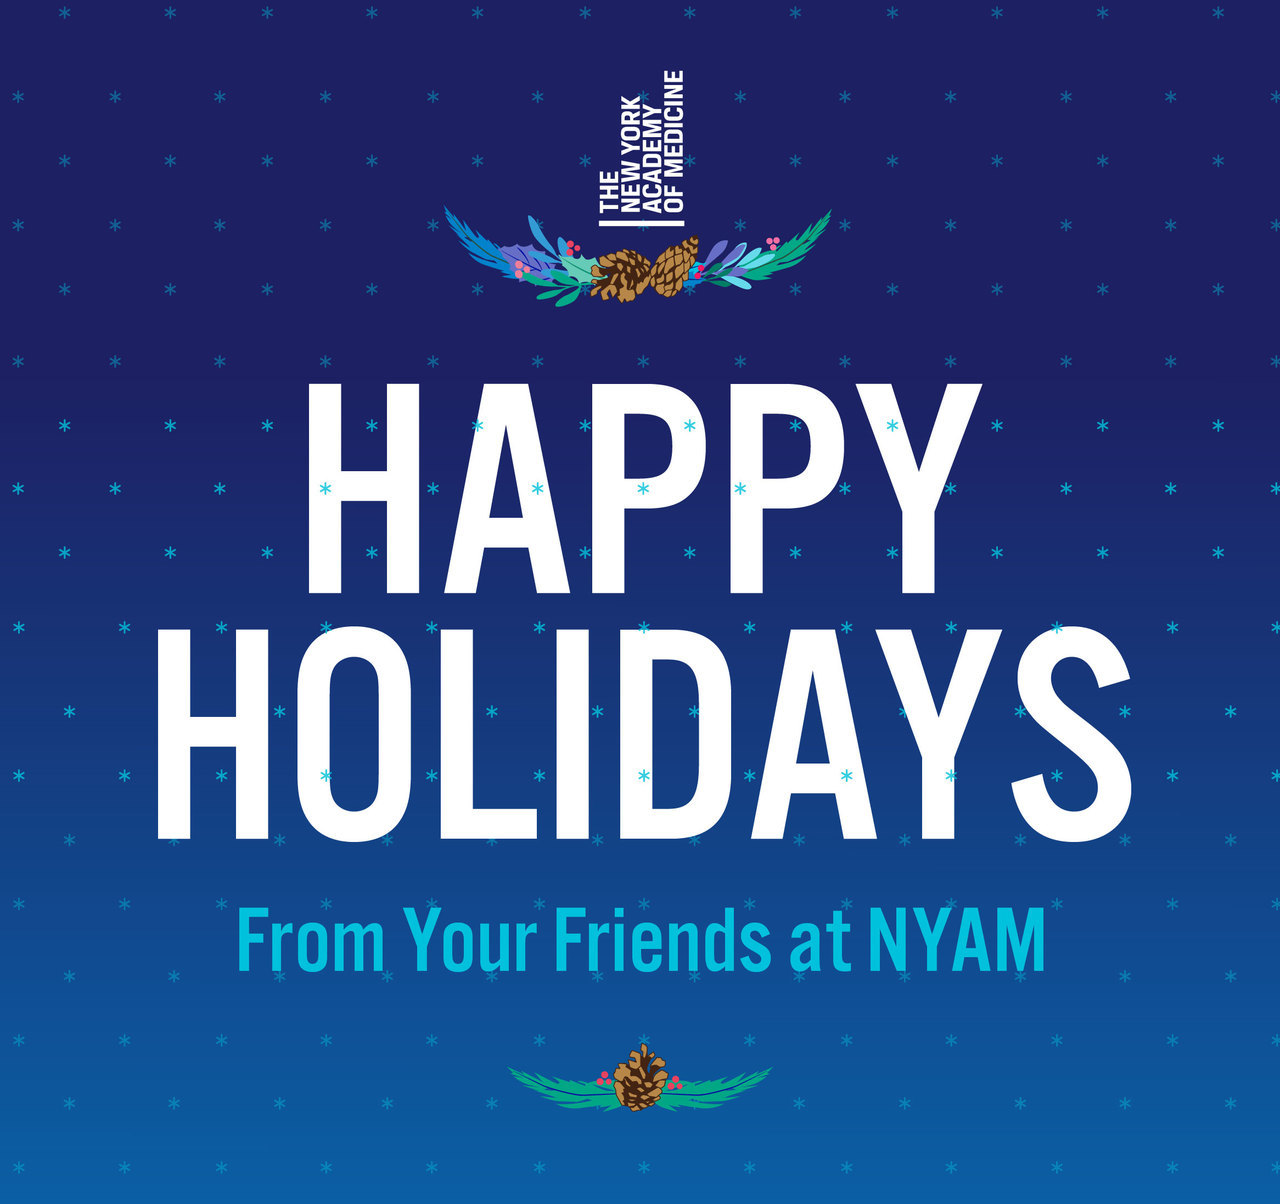 Happy Holidays from your friends at NYAM!